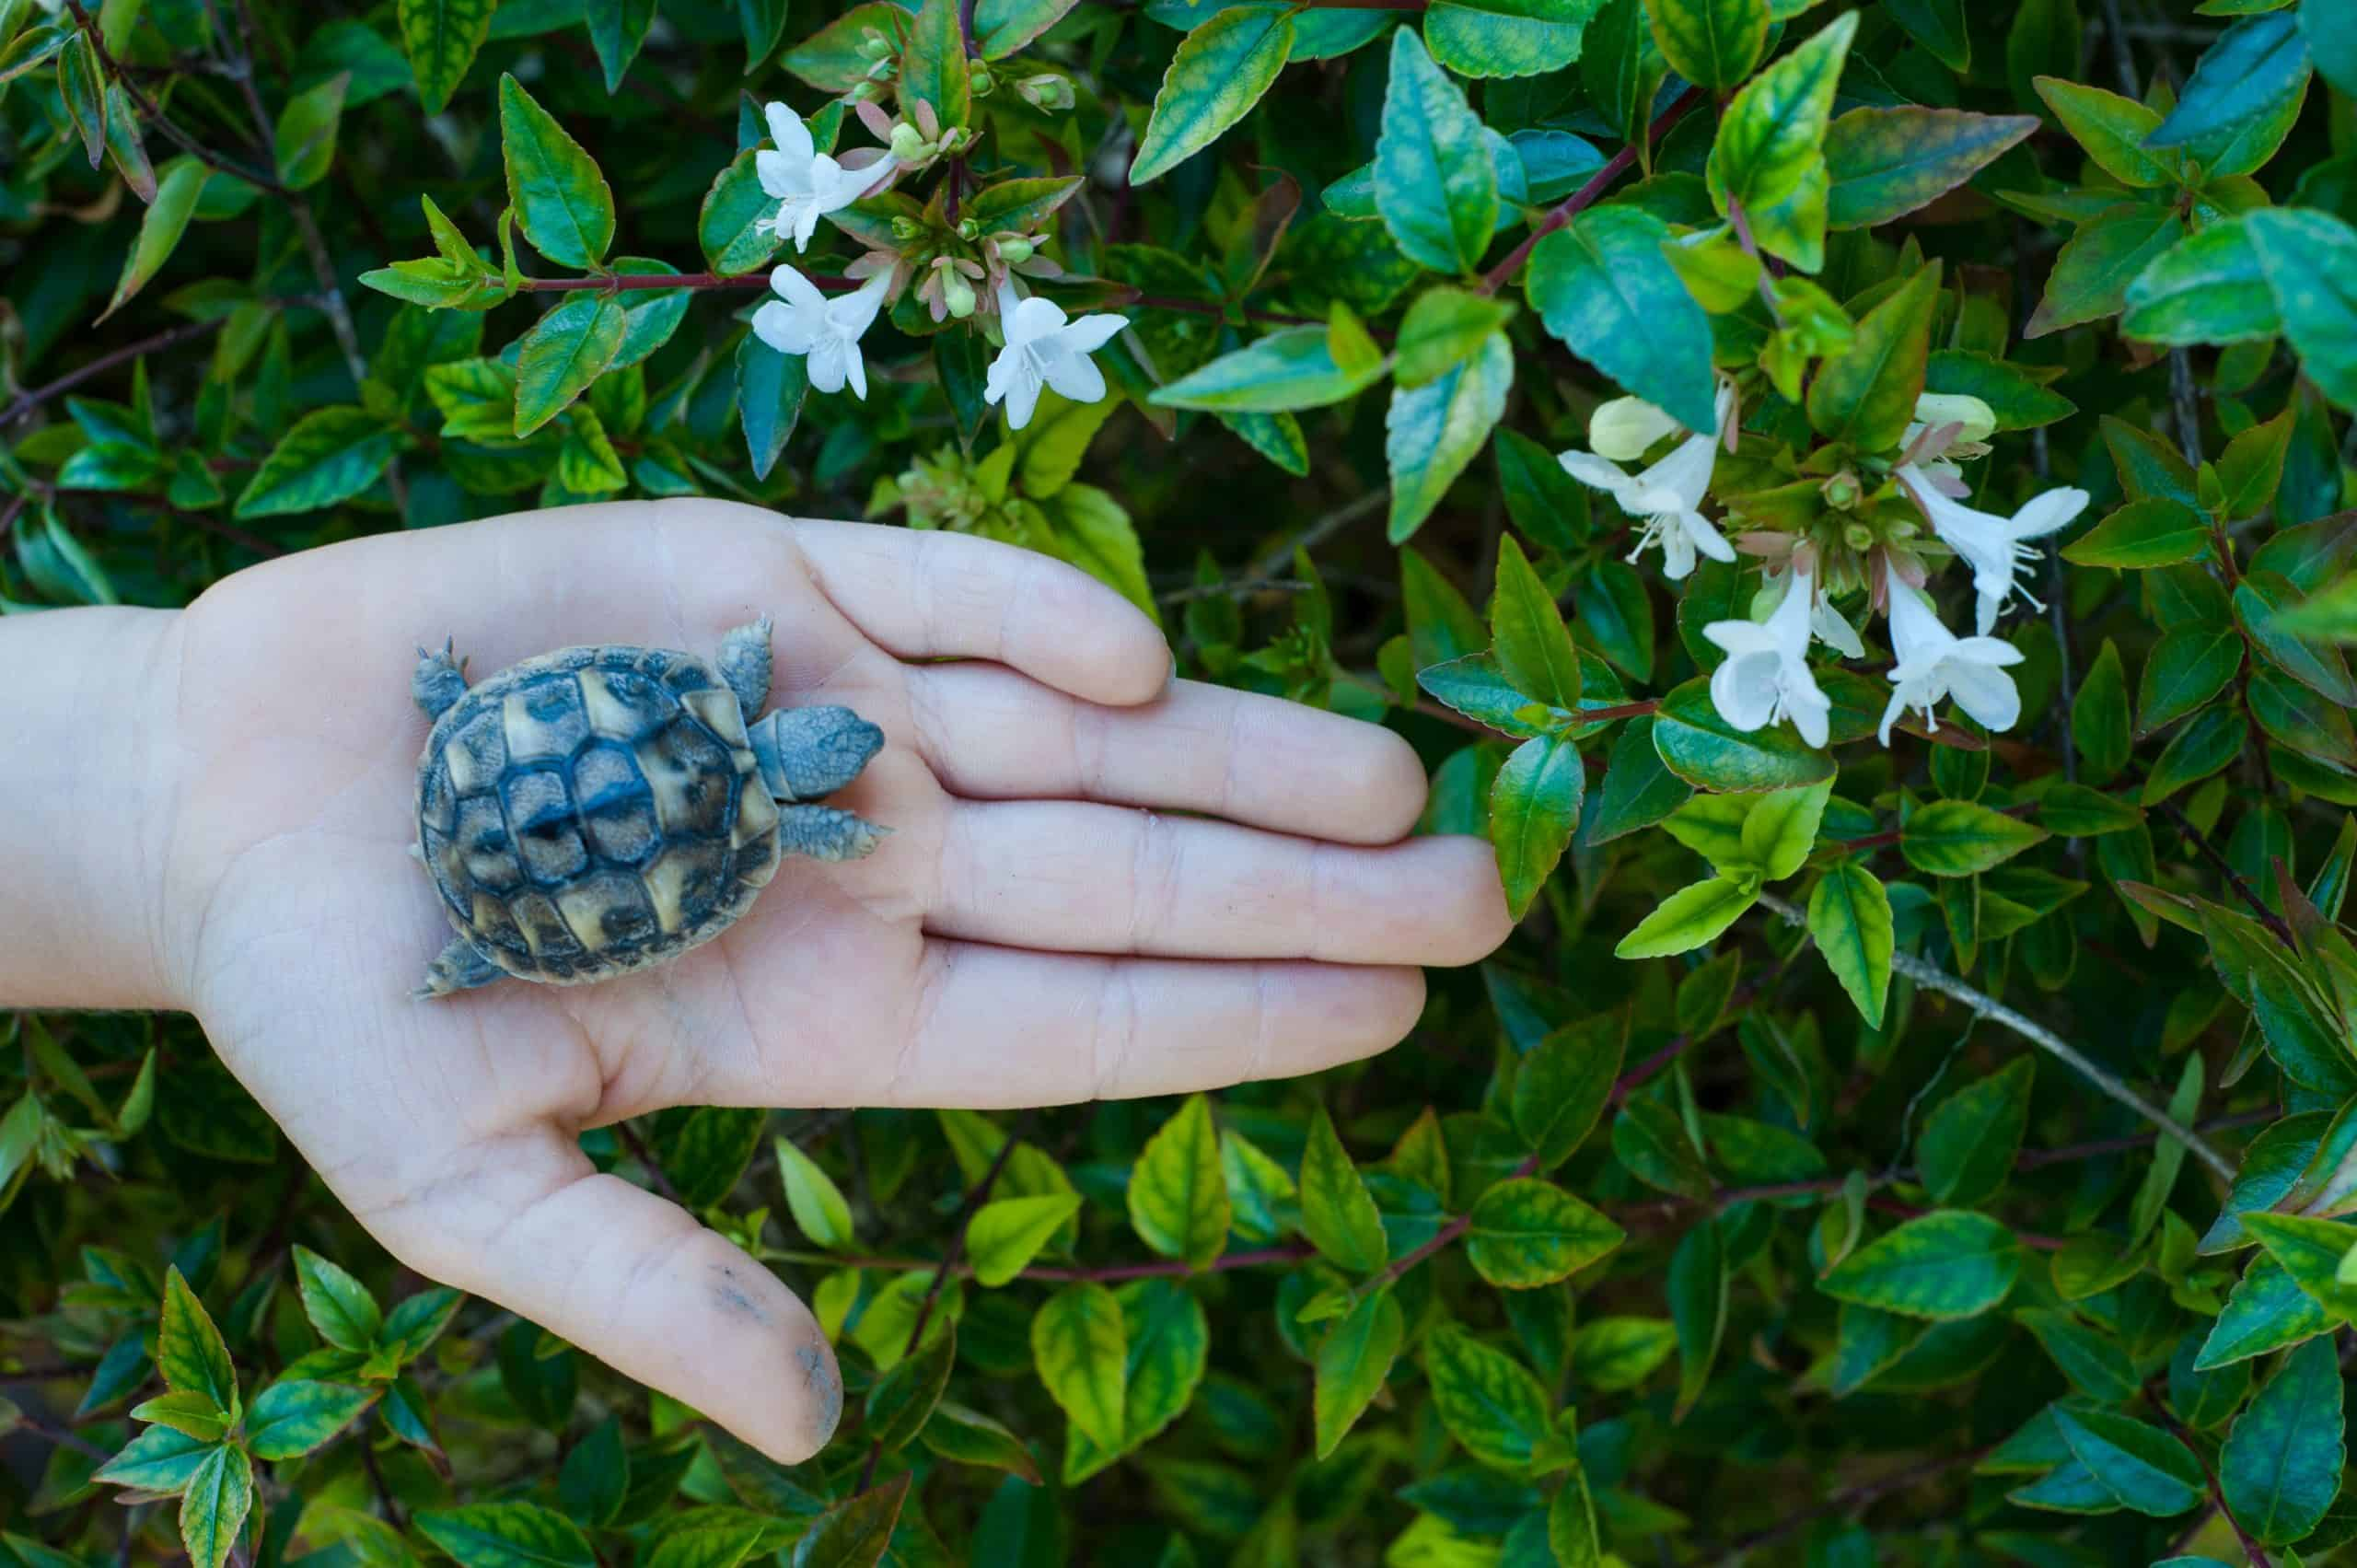 holding-a-baby-turtle